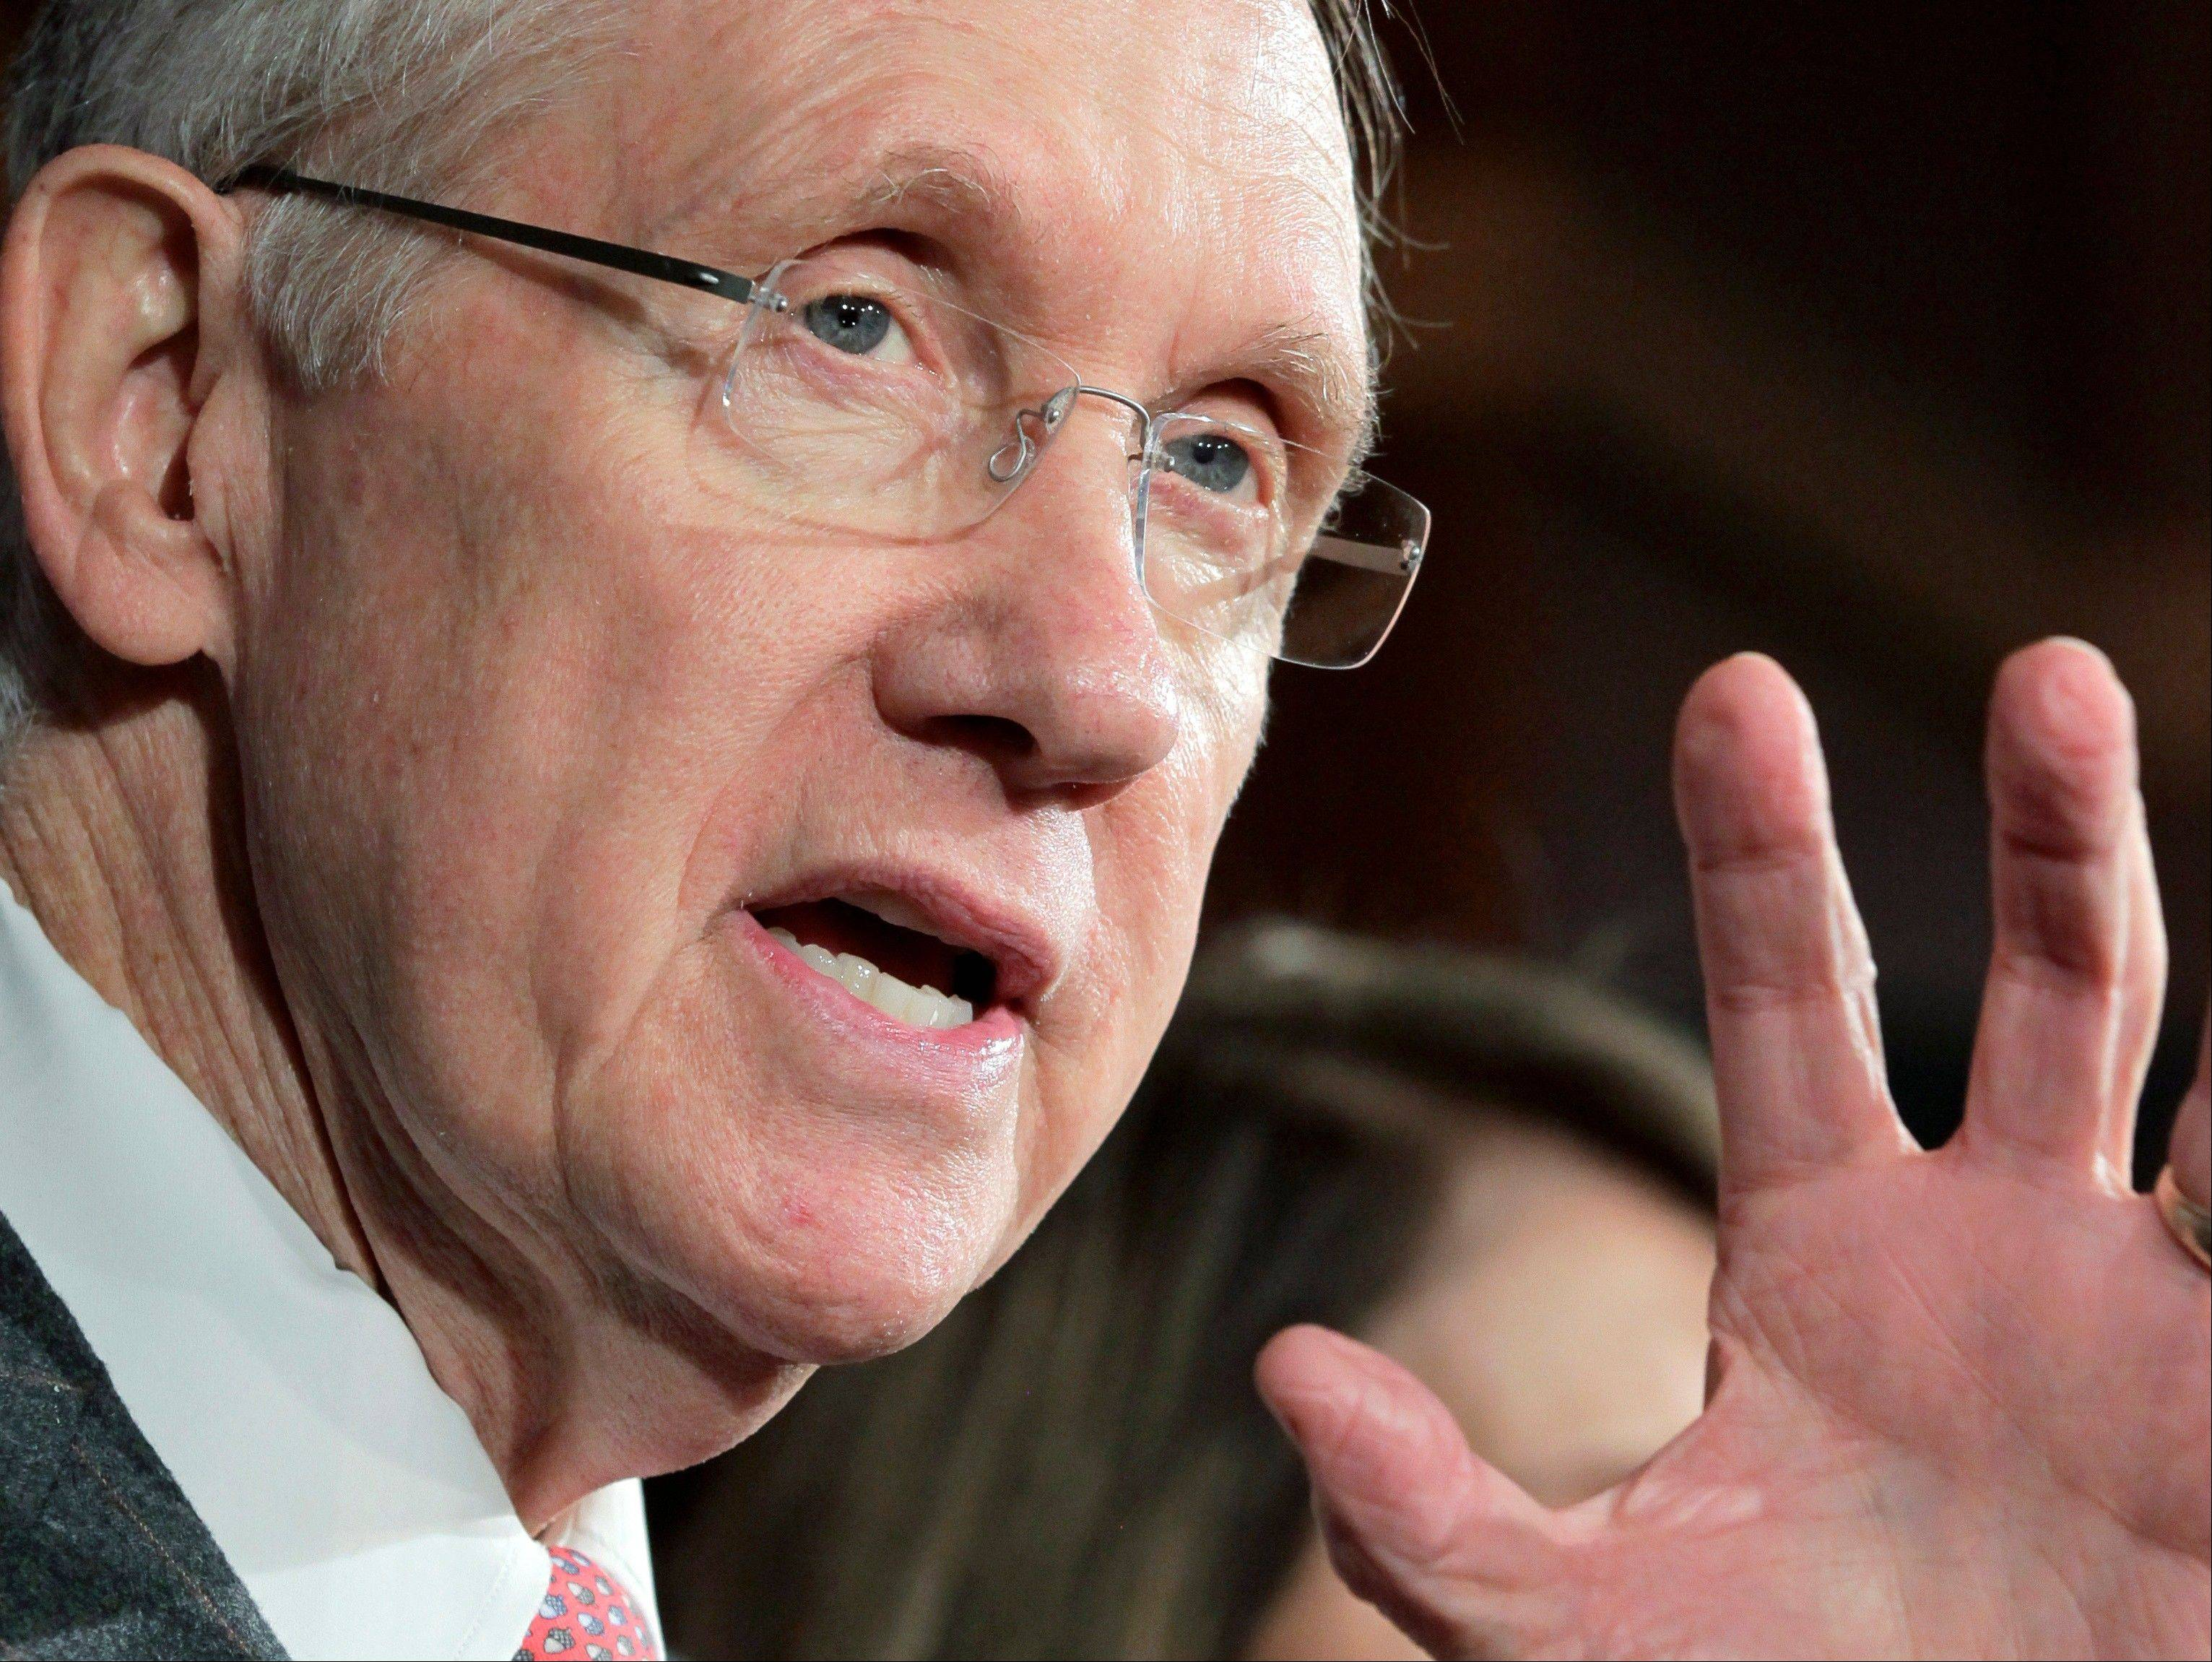 Senate Majority Leader Harry Reid will be leading another battle over spending soon, as Congress once again faces a looming deadline that risks a federal government shutdown.